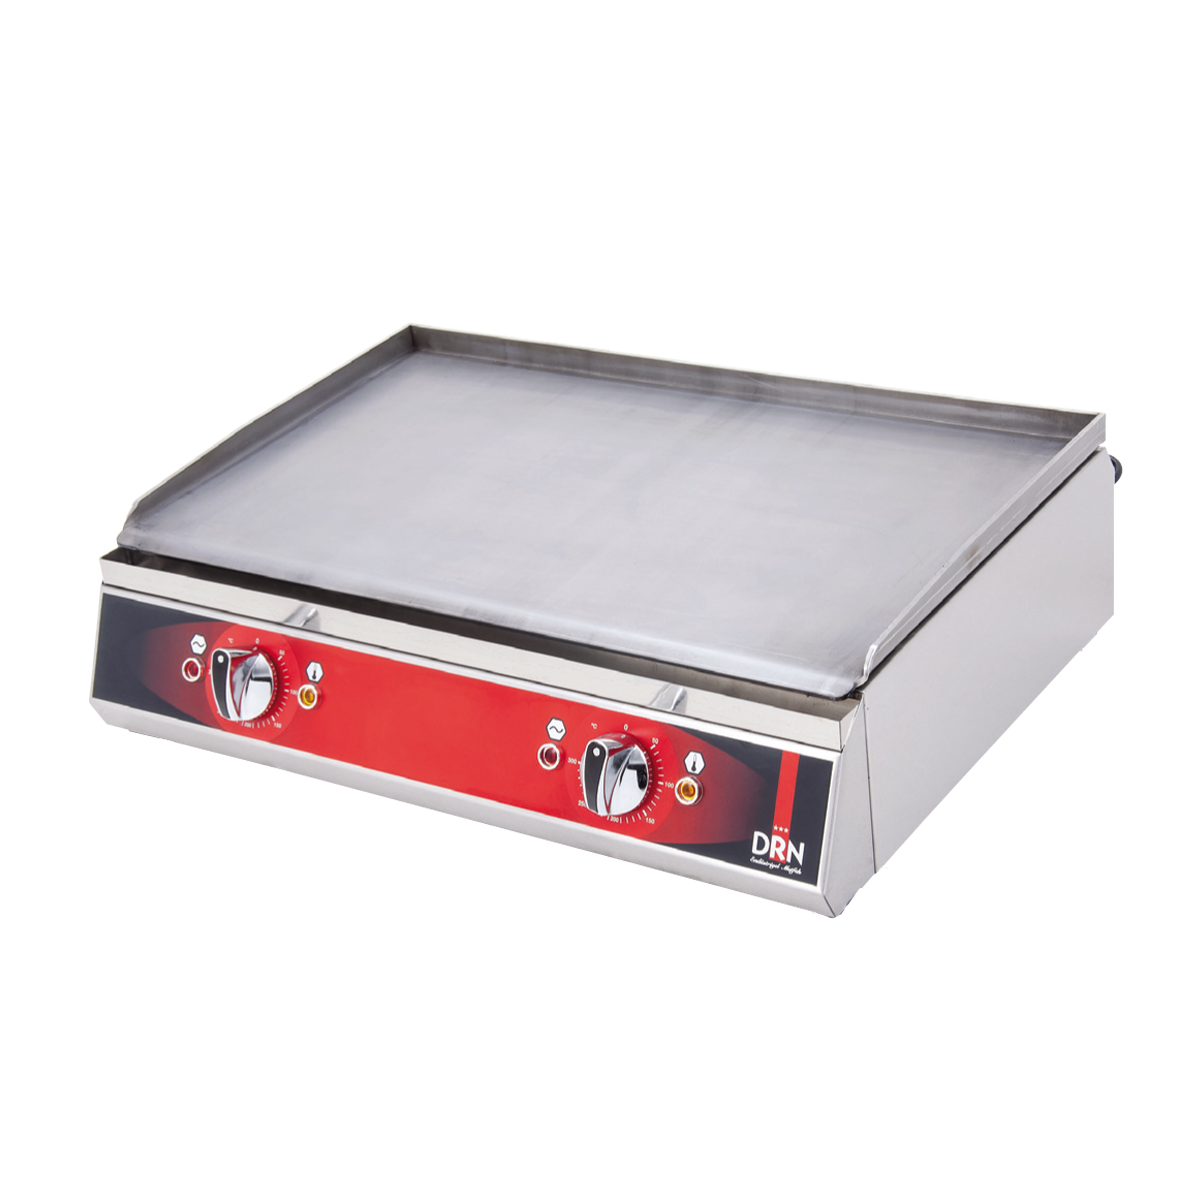 Griddle - 70cm - Electric